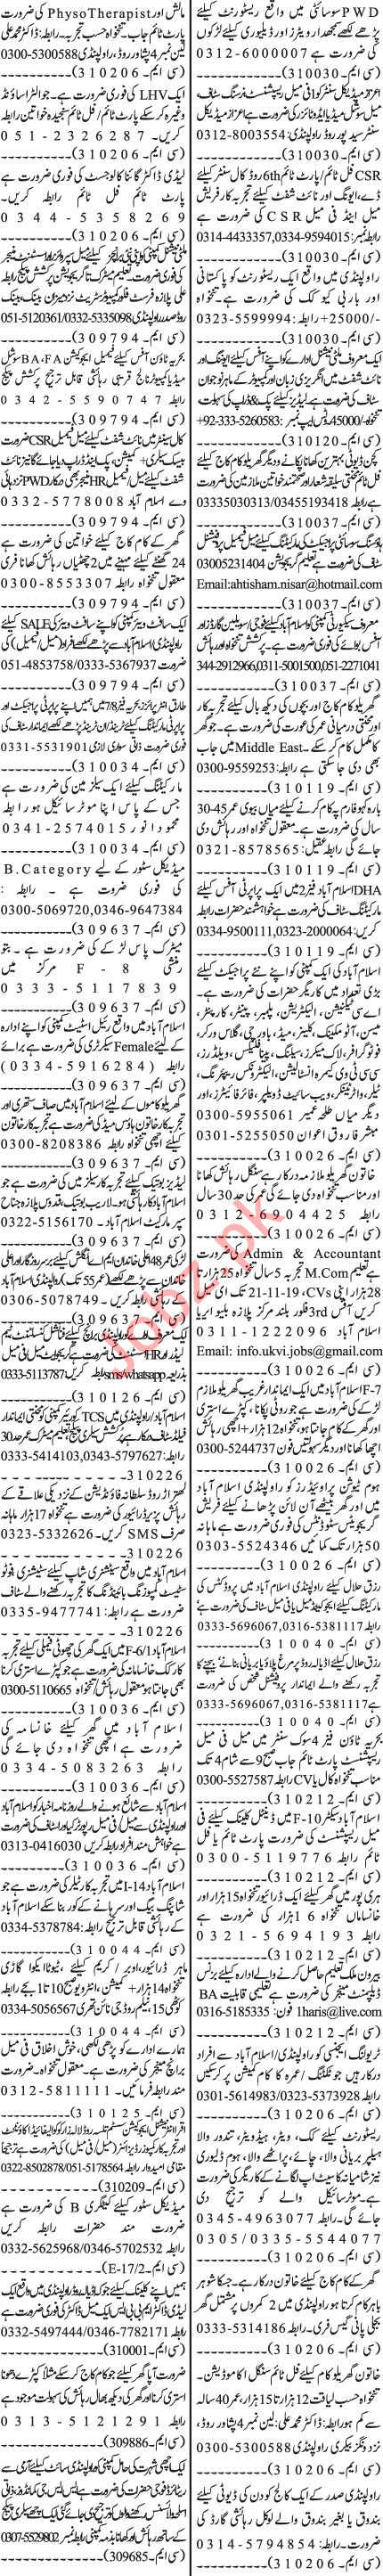 Jang Sunday Classified Ads 17th Nov 2019 for Office Staff